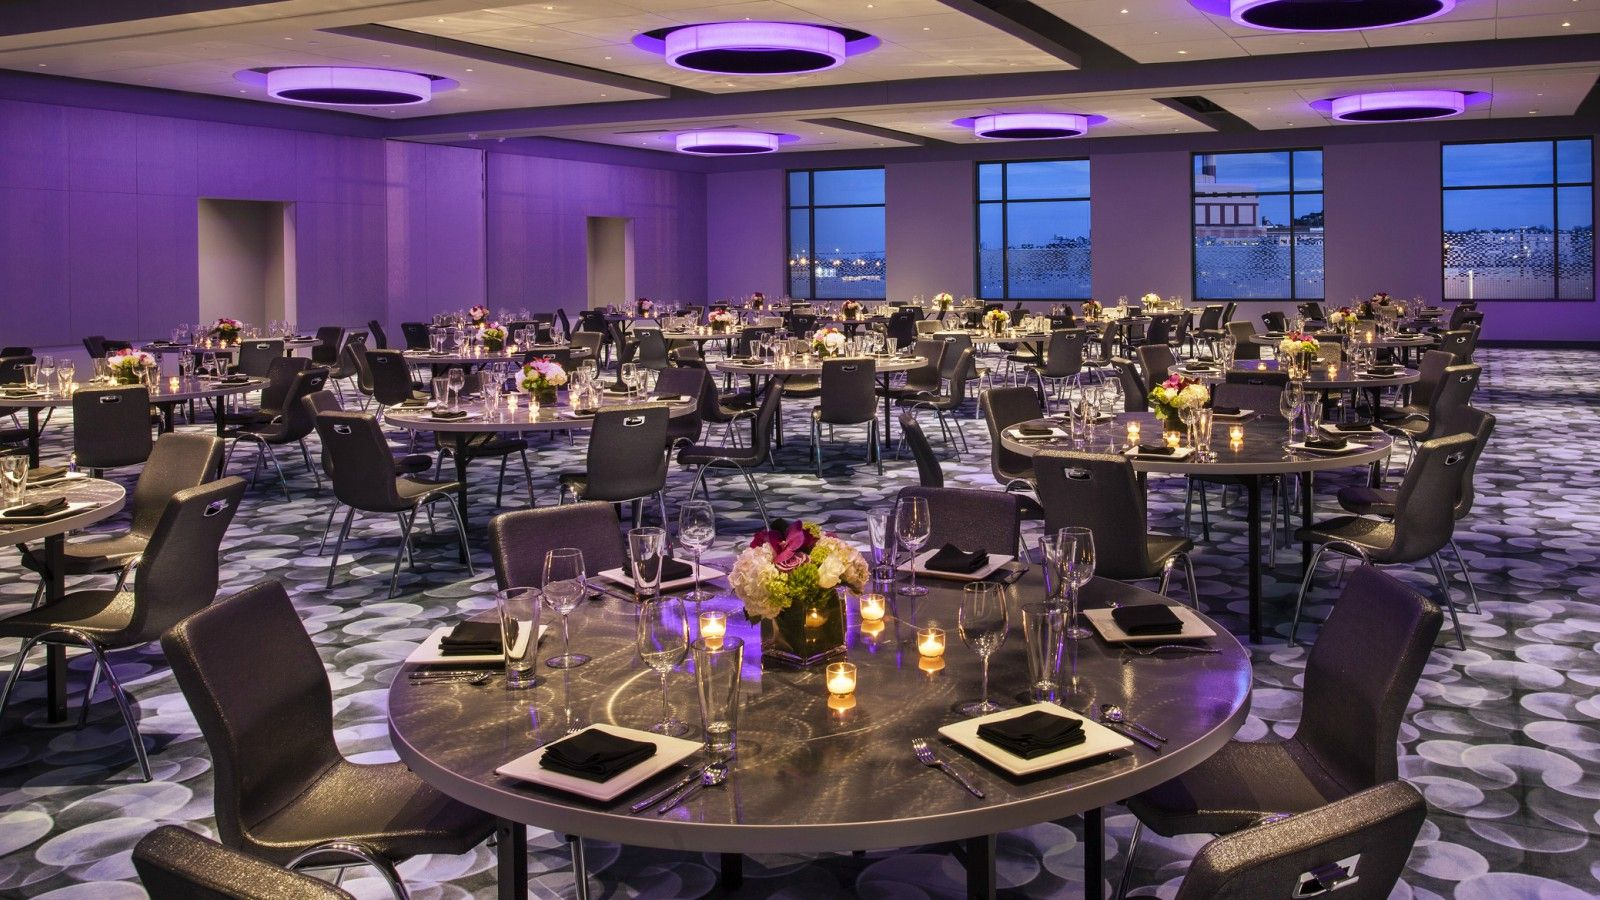 Boston Wedding Venues - Mann Ballroom